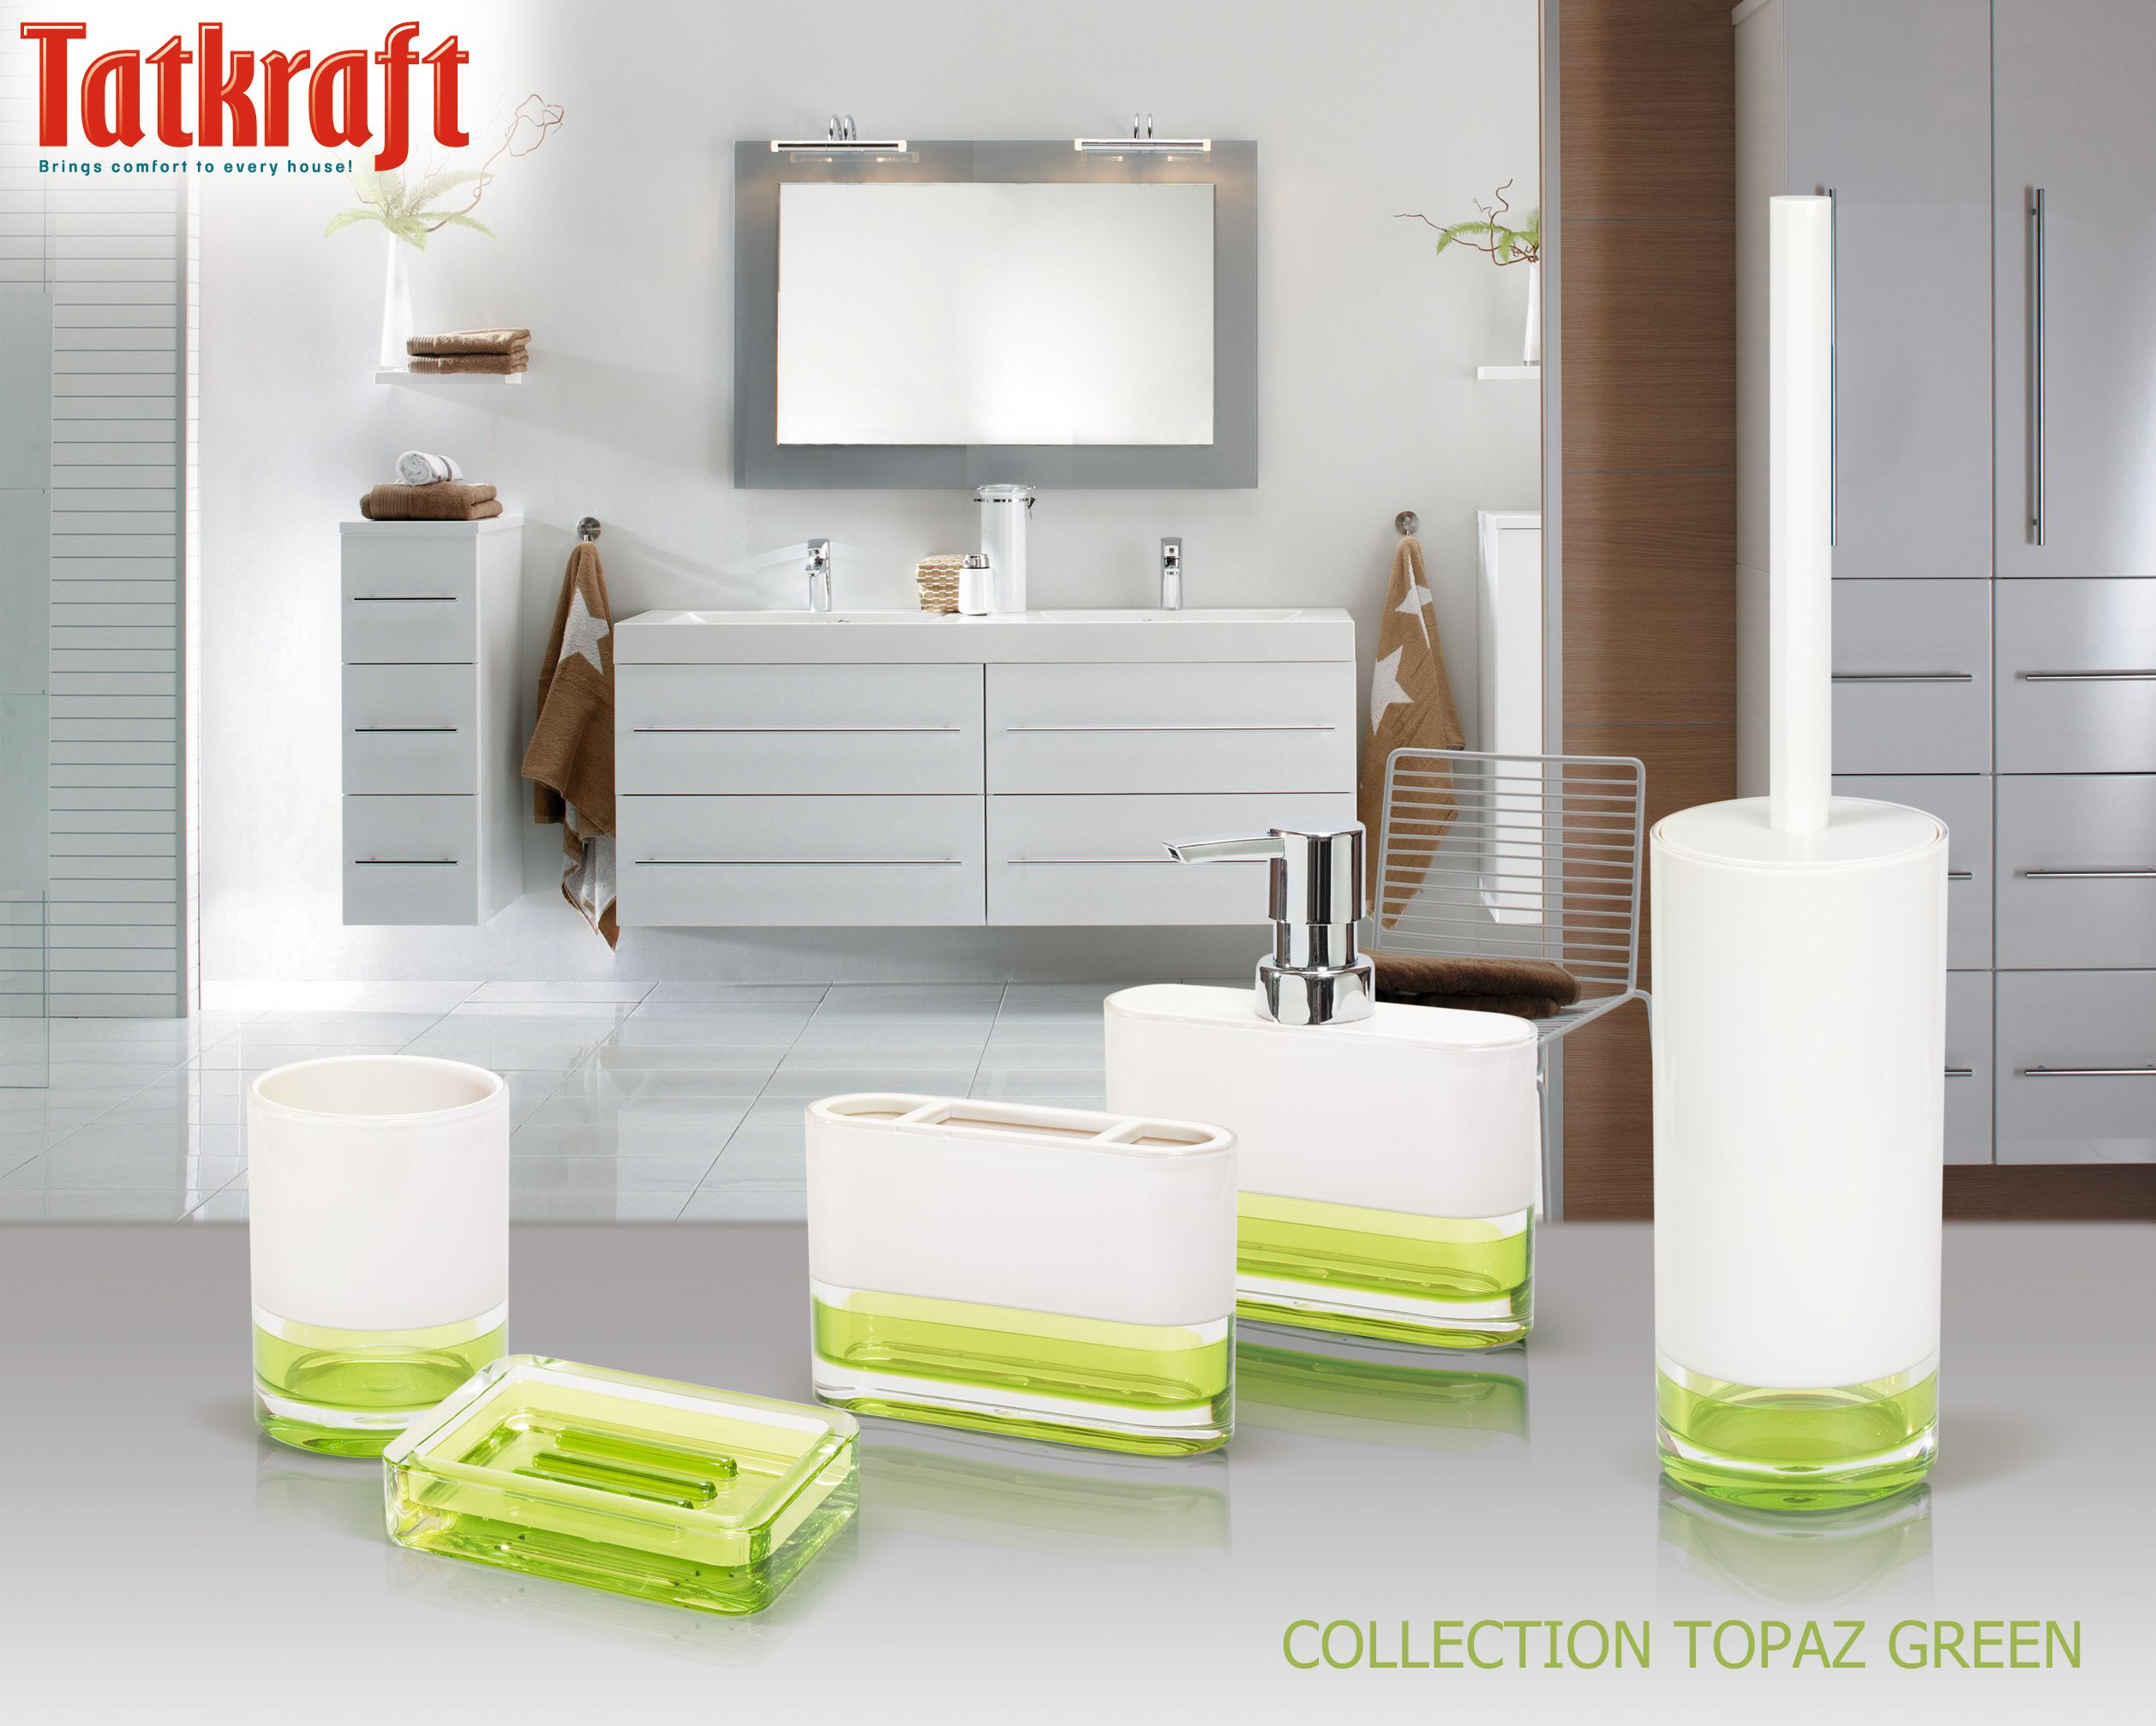 Collection Topaz Green from Tatkraft Acrylic Bathroom Accessories